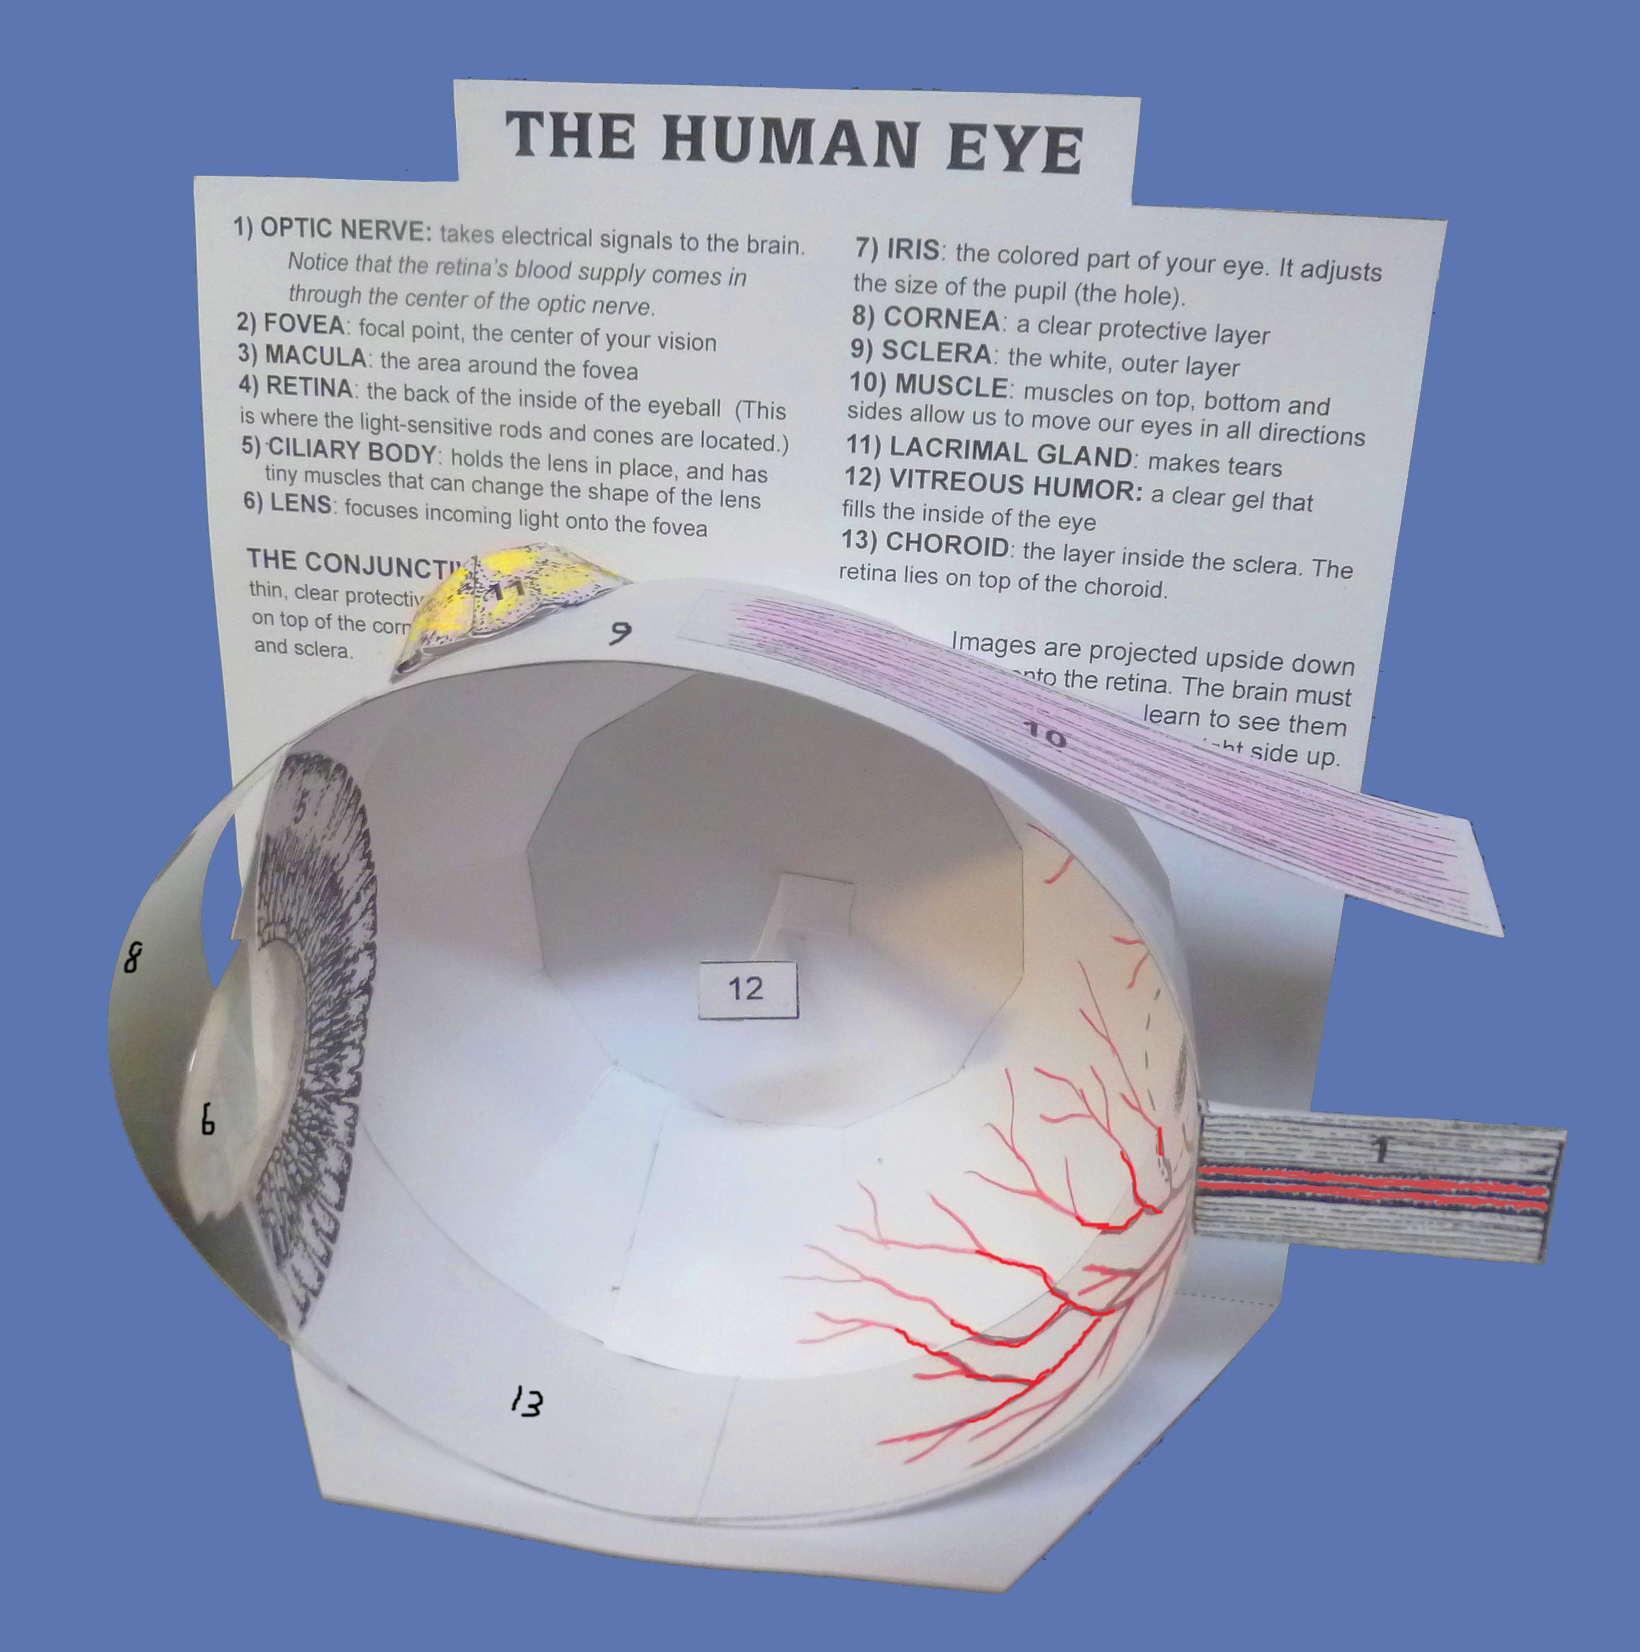 62: The eye (anatomy)